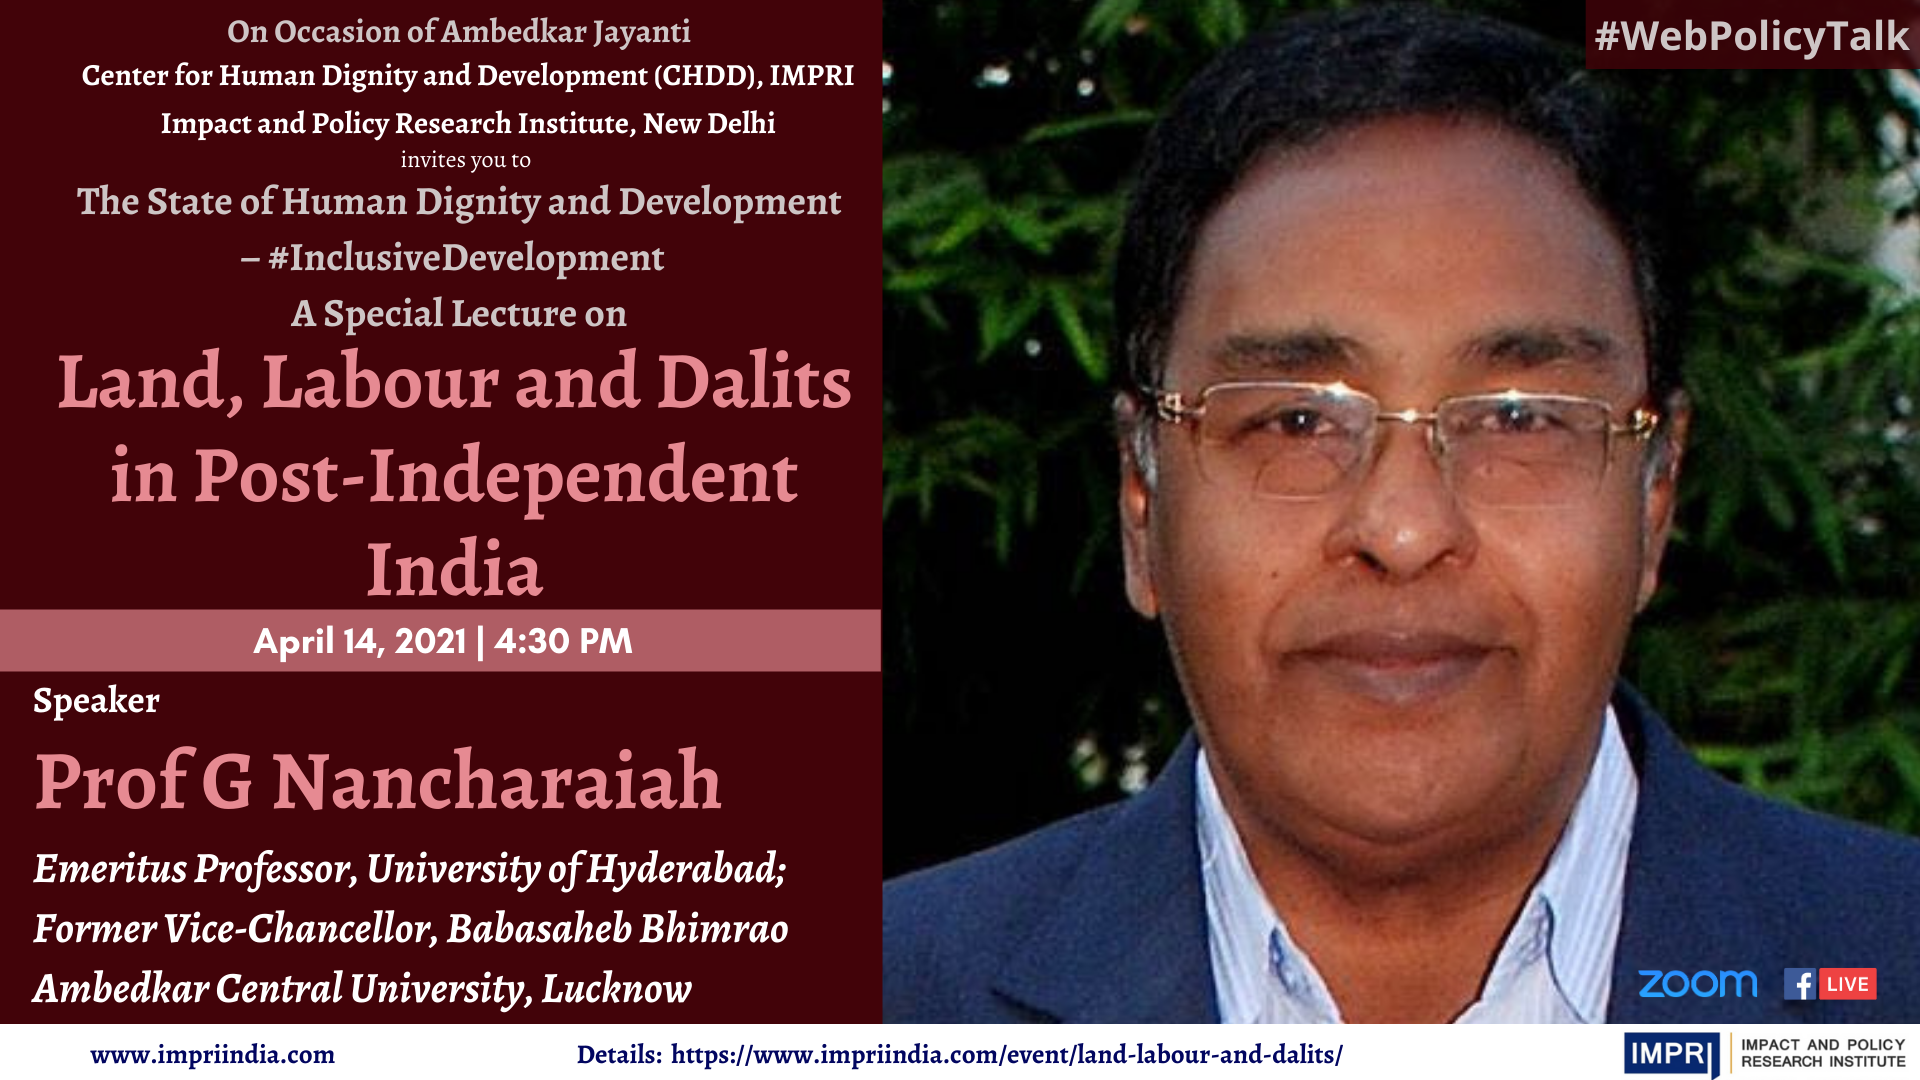 Land, Labour and Dalits in Post-Independent India